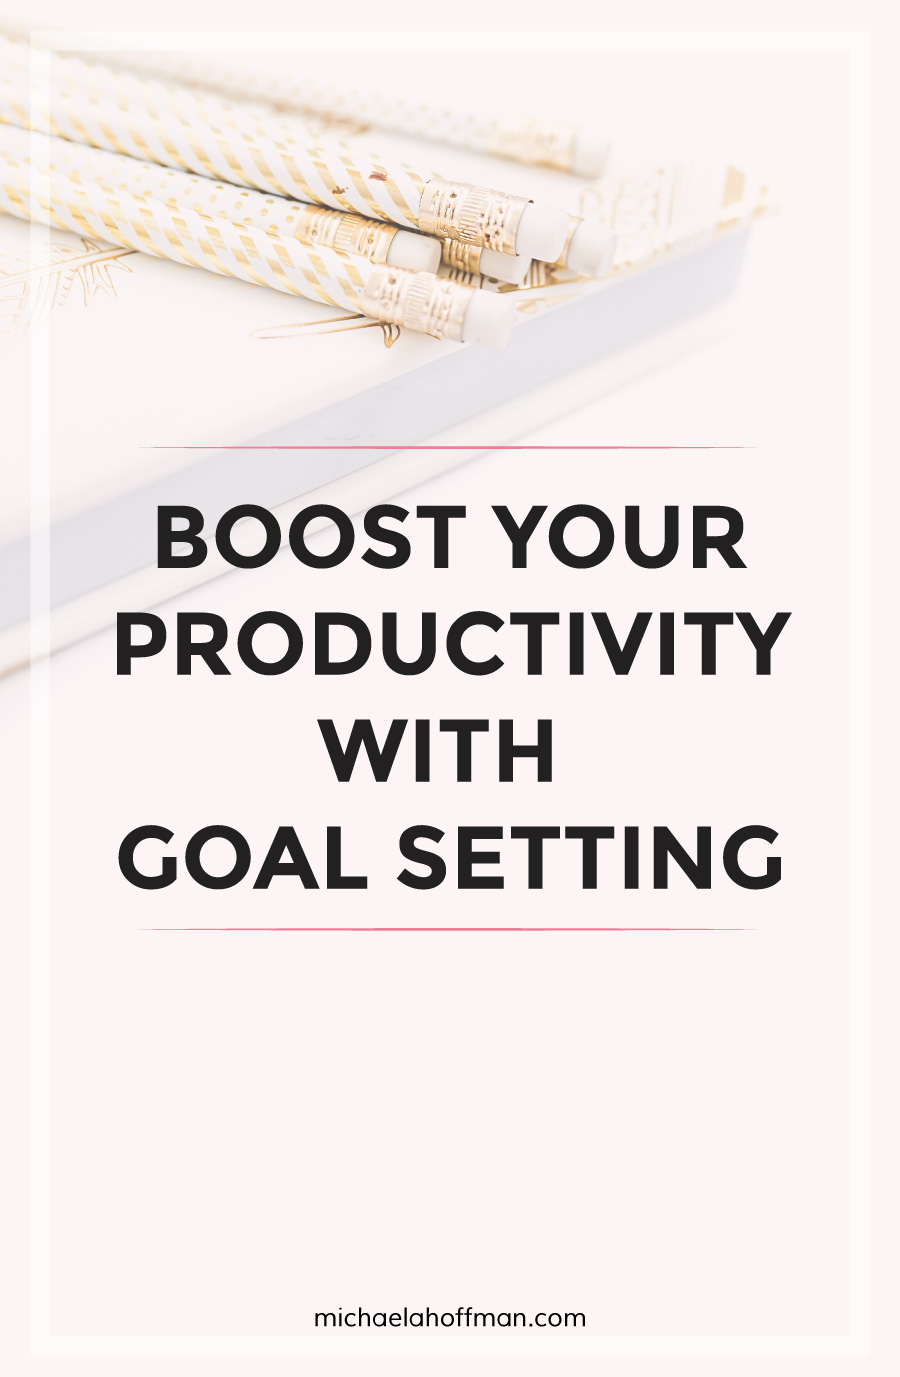 Boost Your Productivity With Goal Setting | michaelahoffman.com